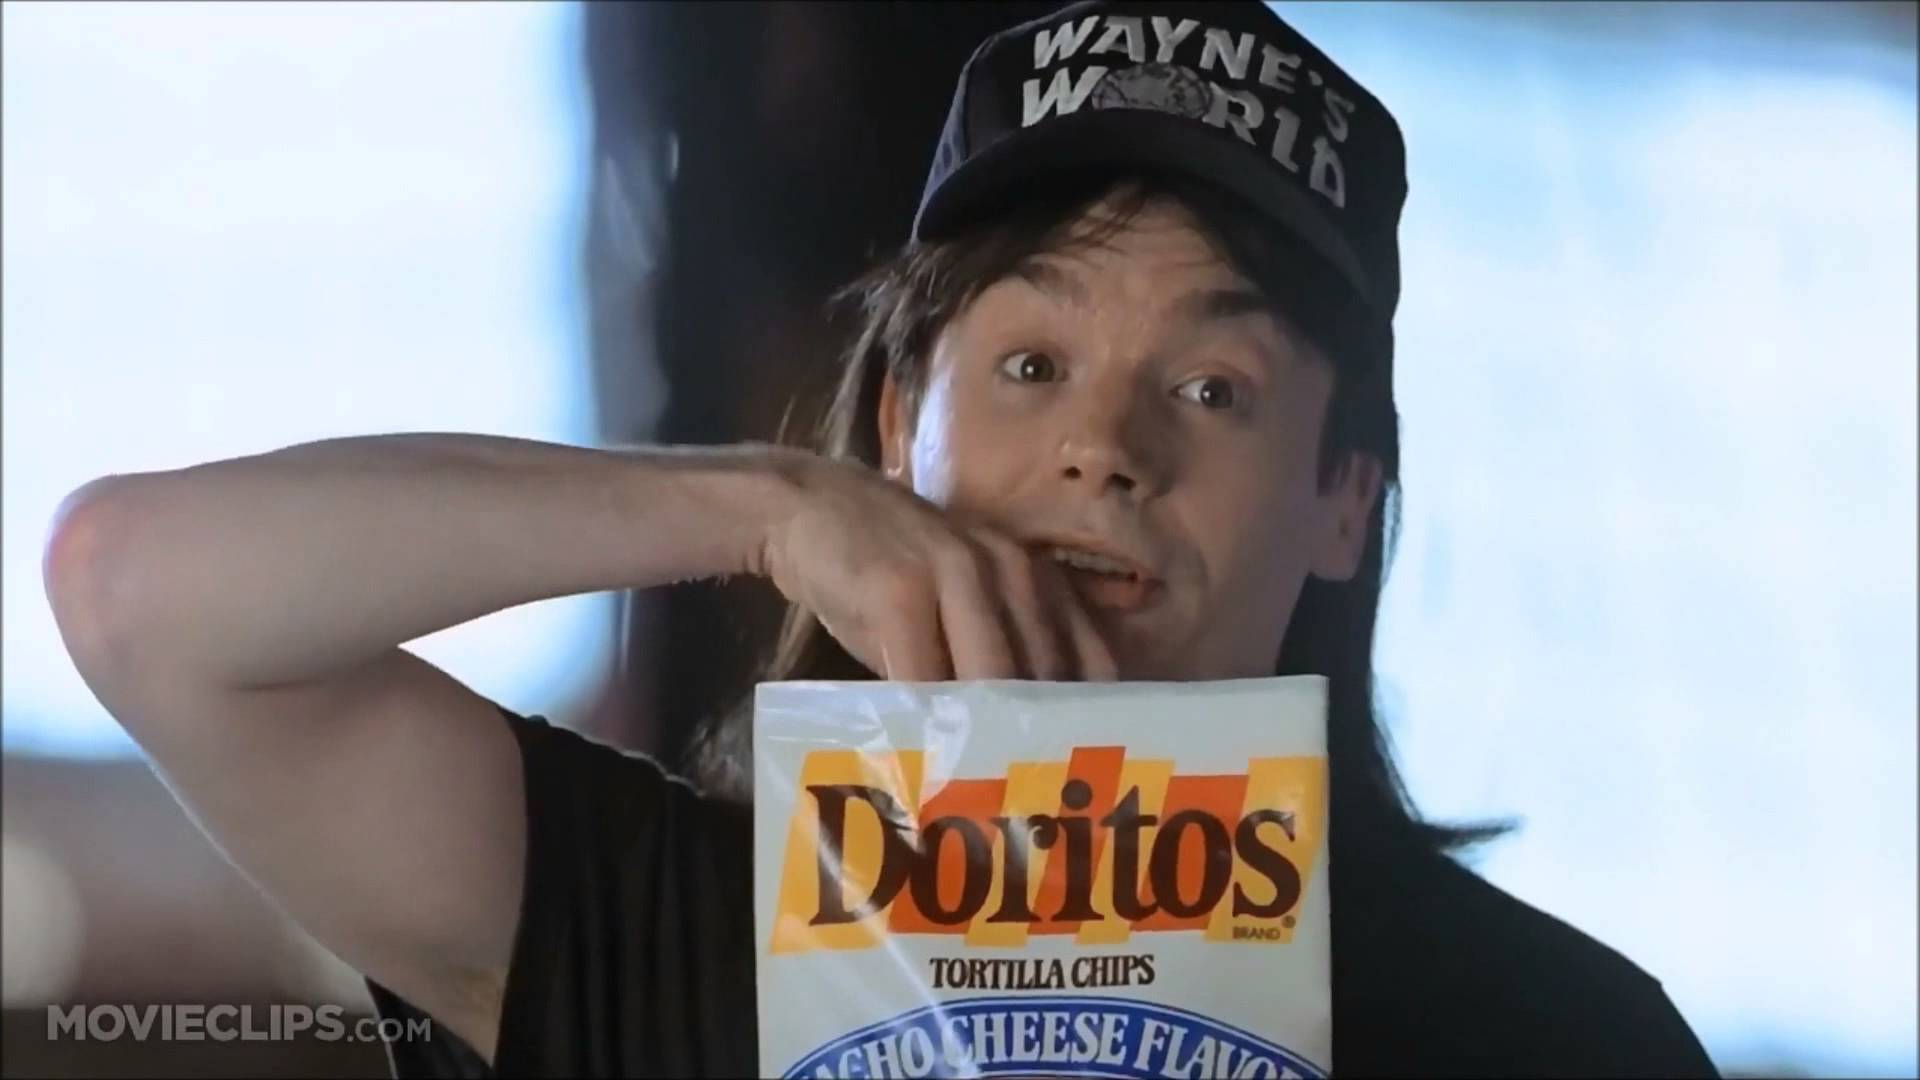 Dorito's Product Placement in Wayne's World